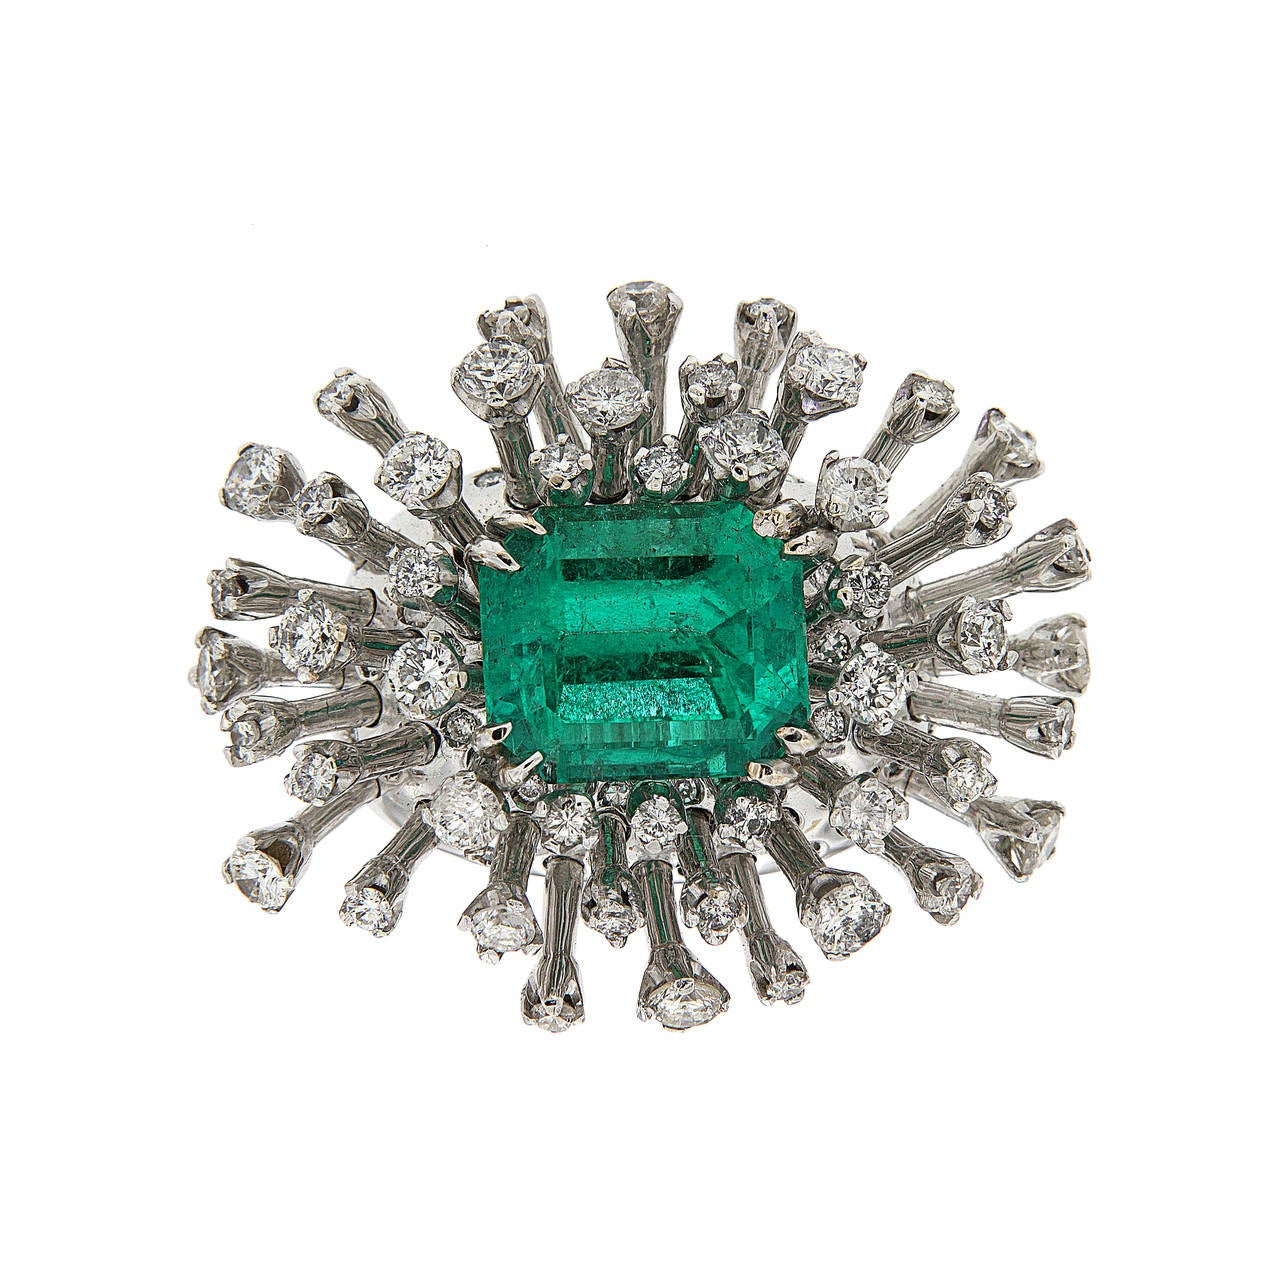 Brilliant Cut 6.26 Carat Green Emerald Diamonds White 18K Gold Cocktail Ring Made In Italy For Sale